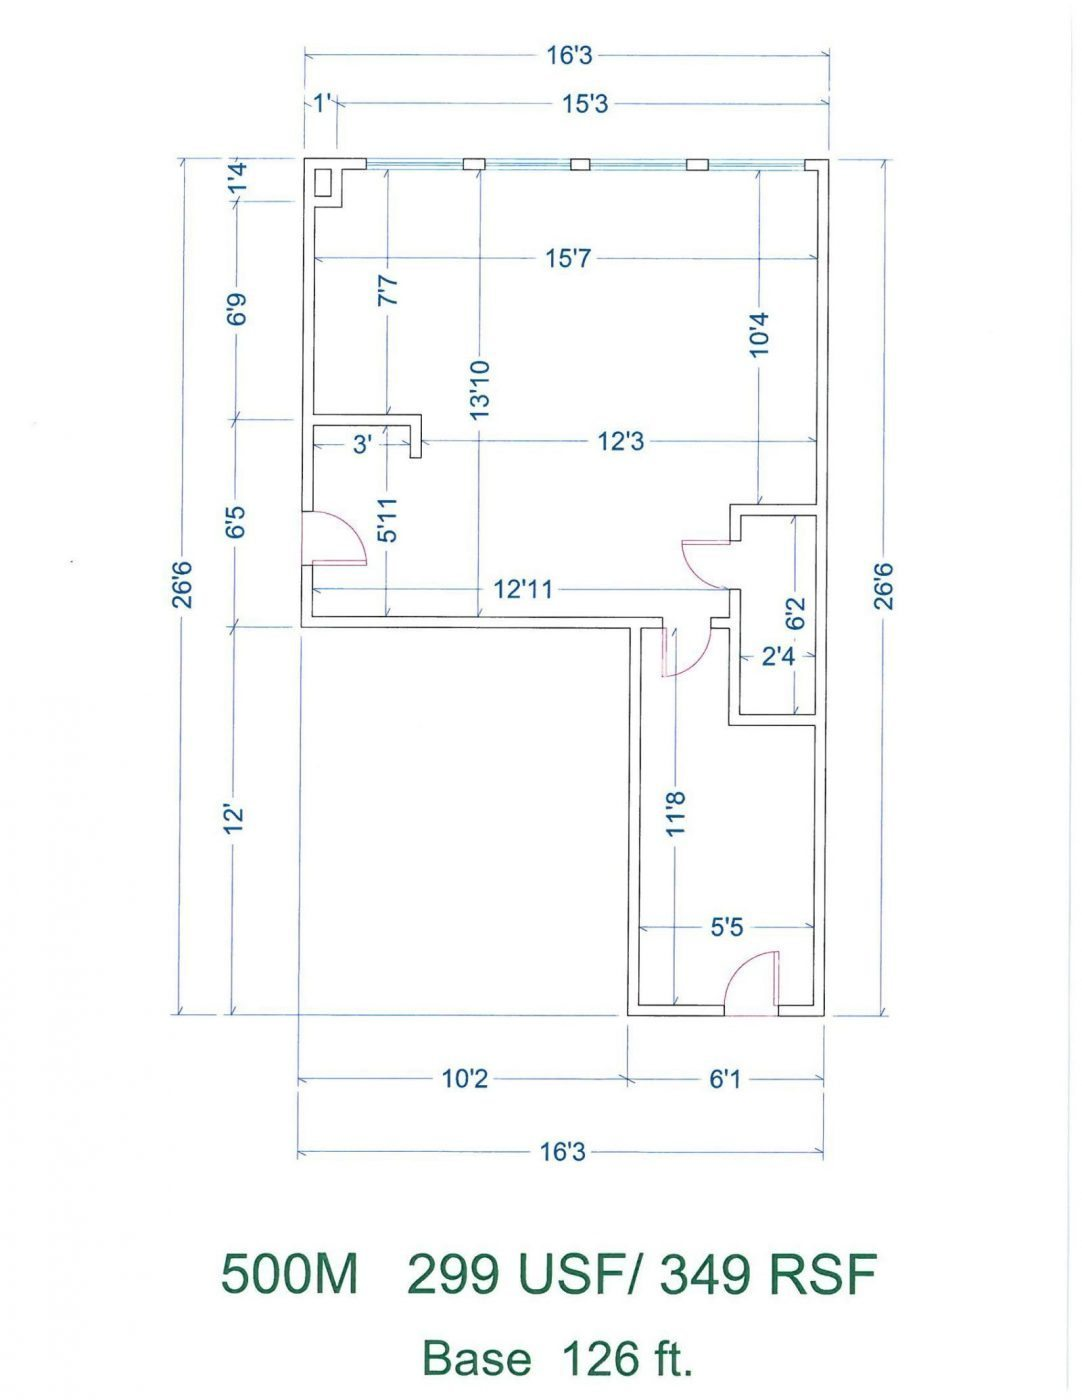 Floor Plan for unit 410M at 20905 Greenfield Rd - 4th Floor Southfield, MI 48075